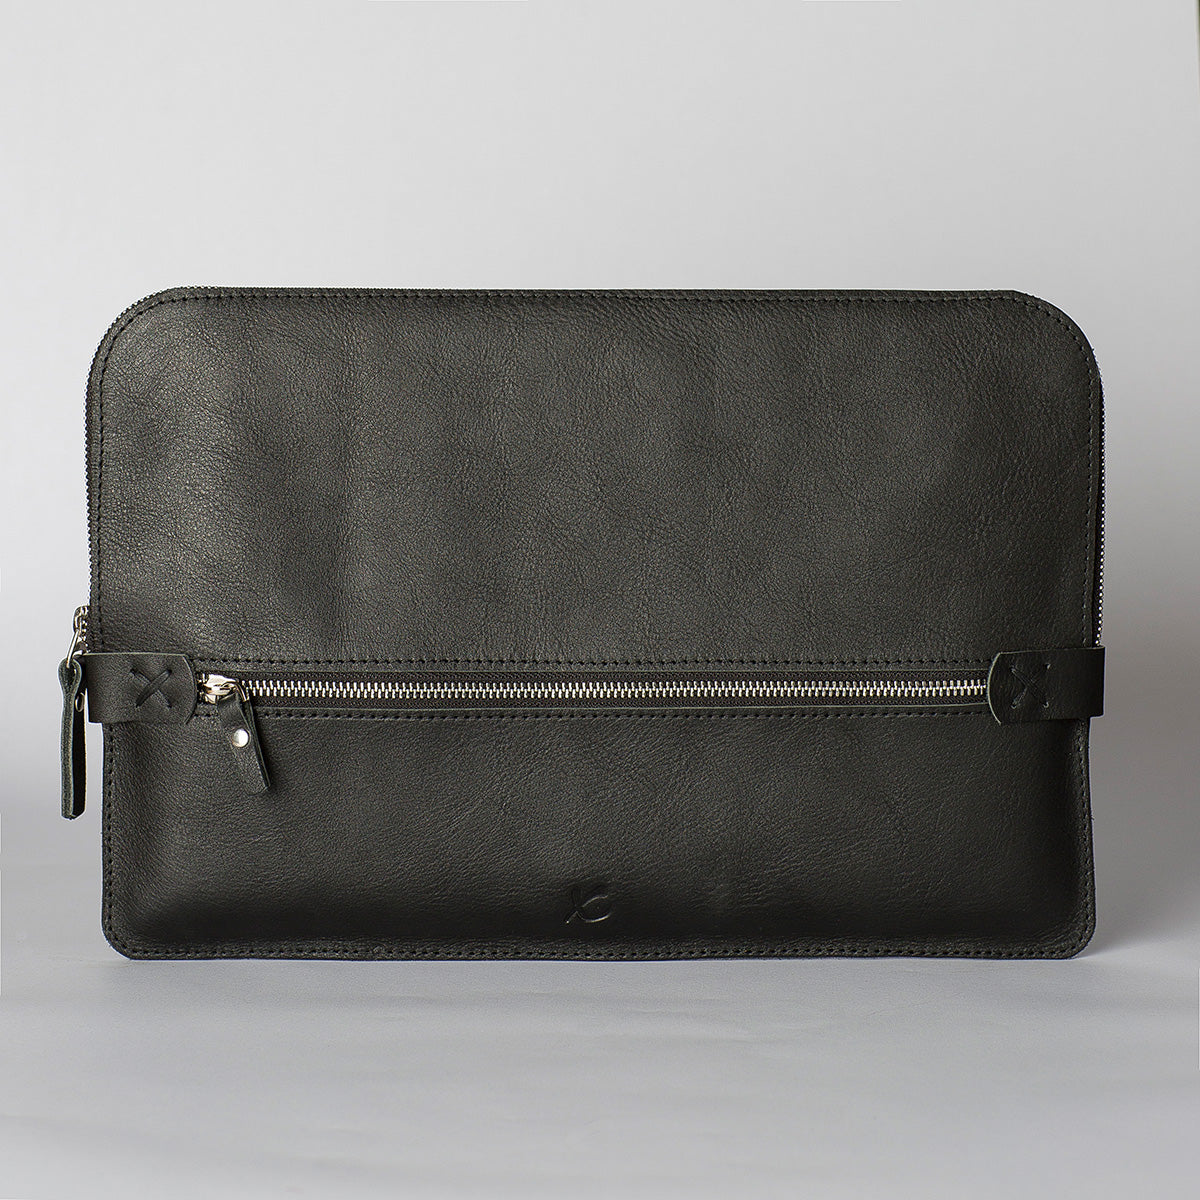 BRIEFCASE / MACBOOK SLEEVE